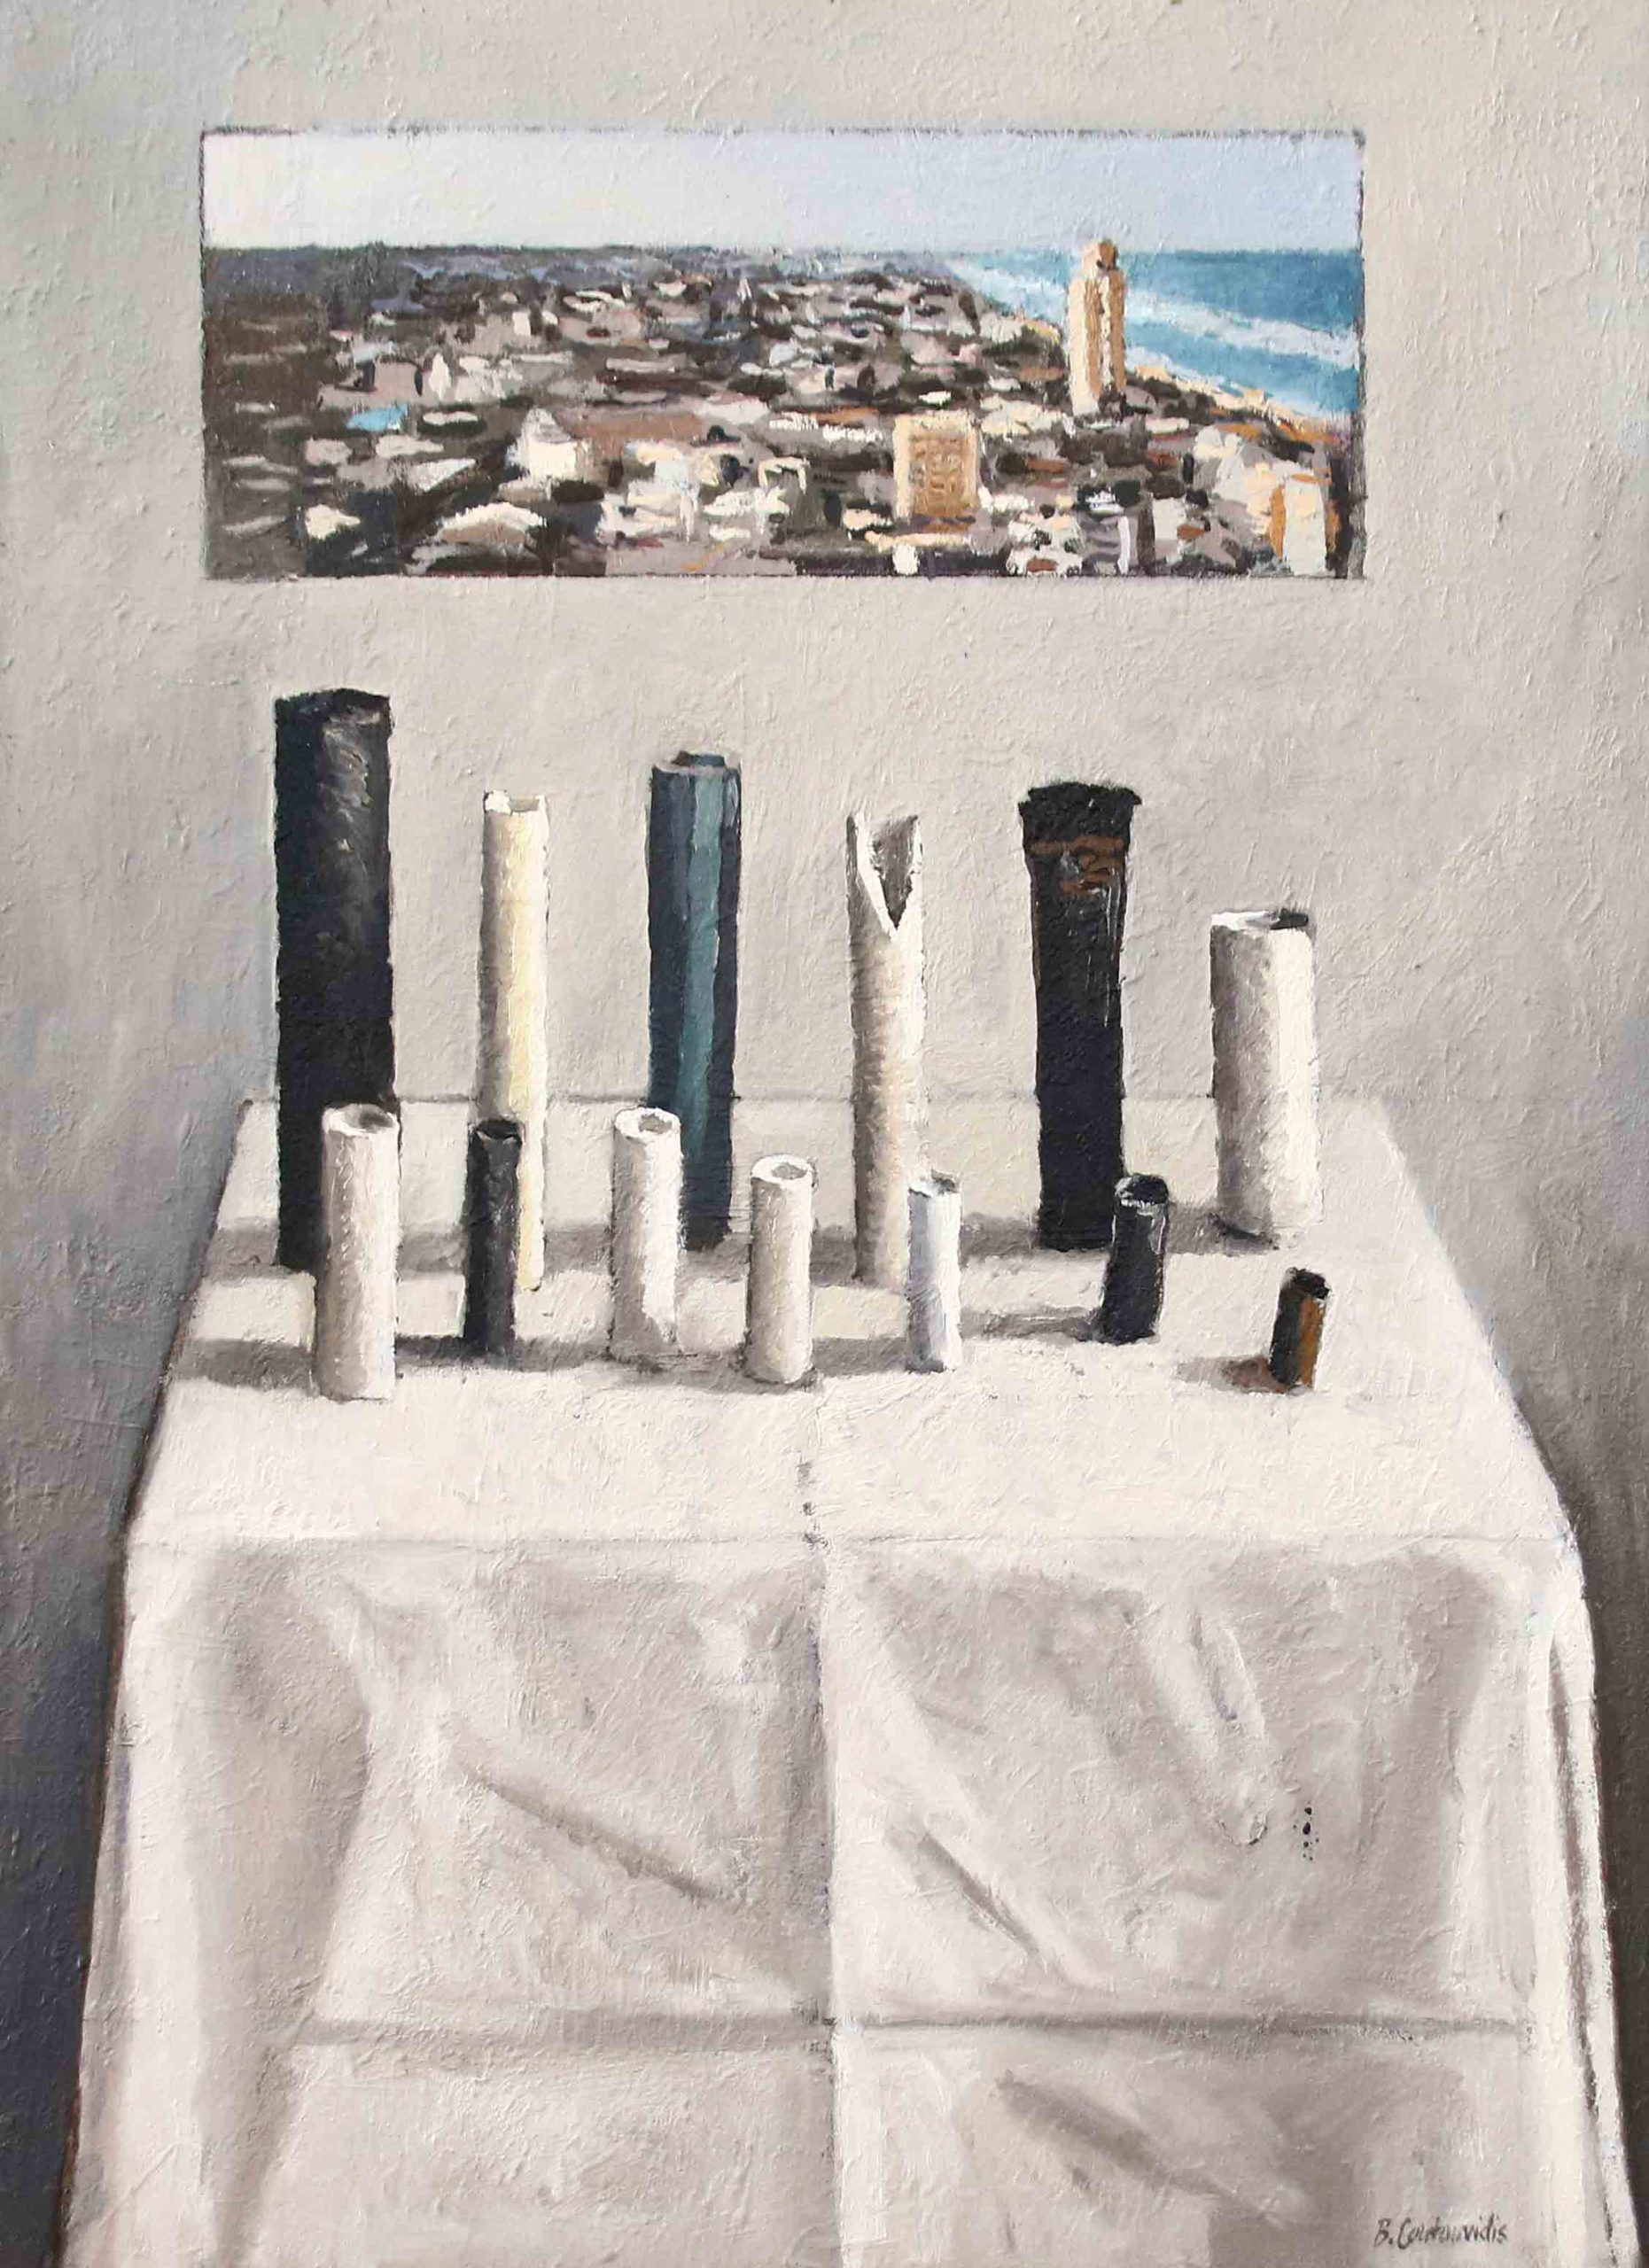 Ben Coutouvidis | Pipes with view of European Coastal City | 2020 | Eclectica Contemporary | Gallery | Cape Town |